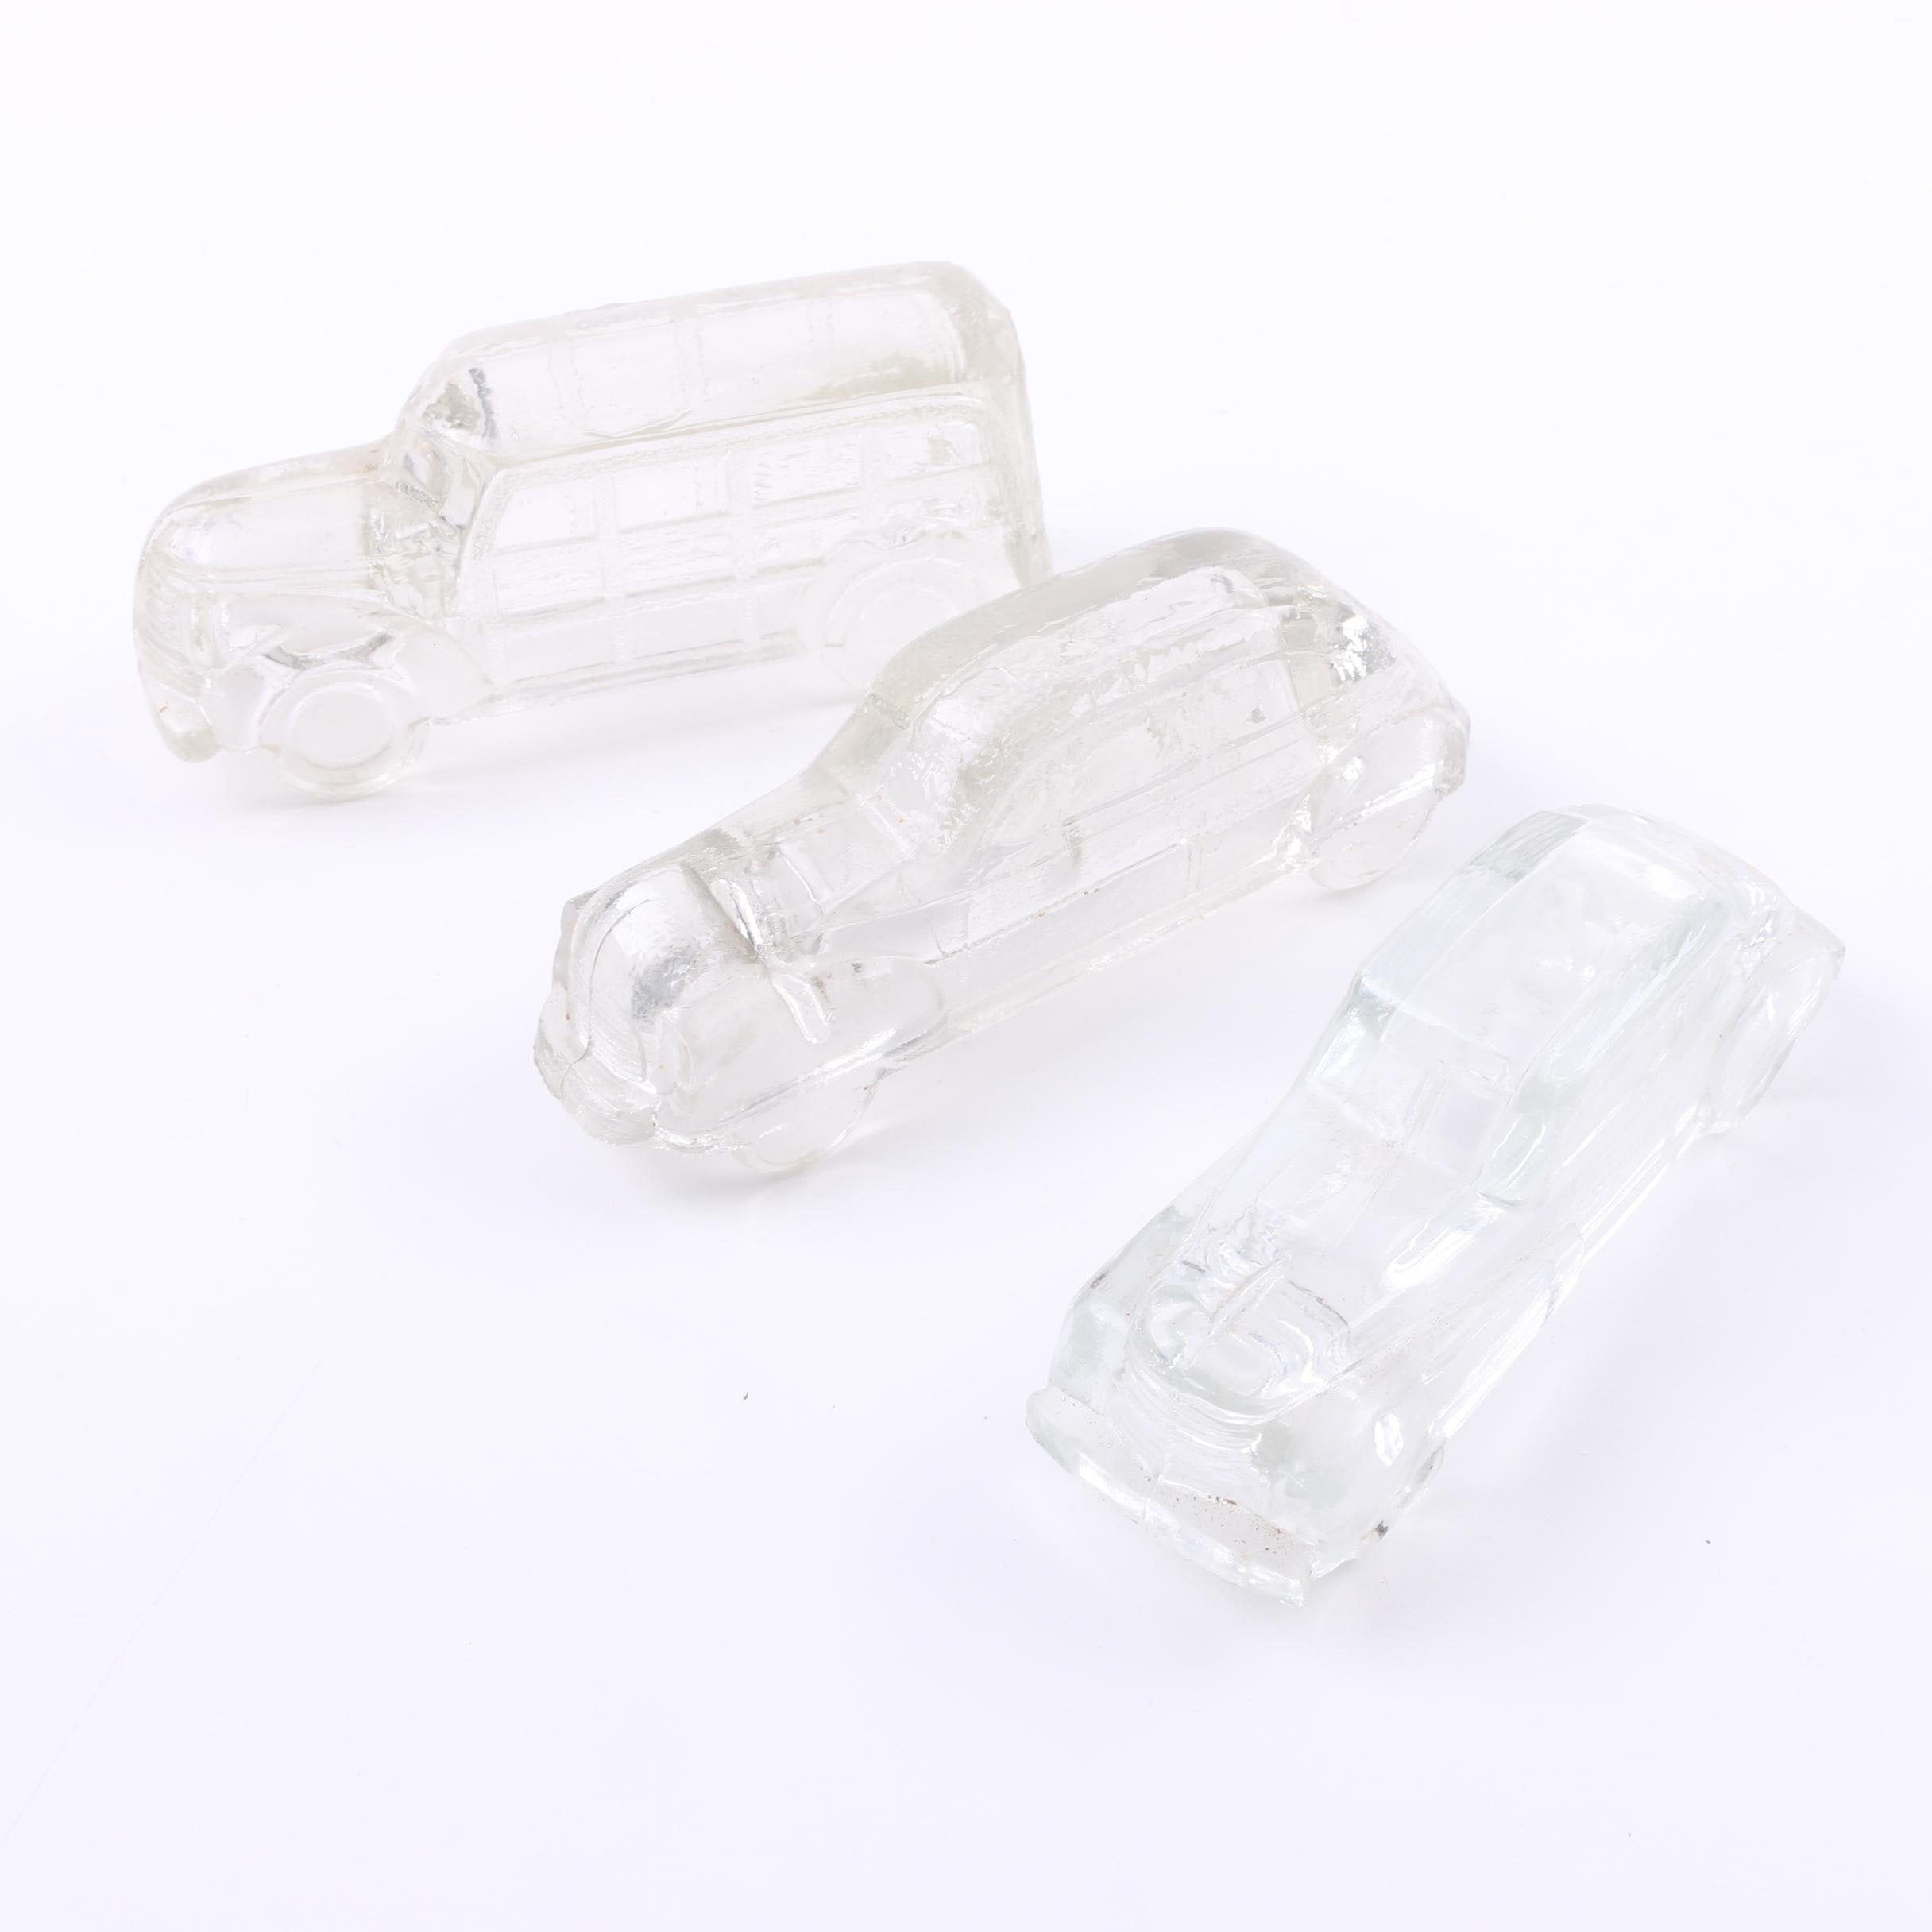 Early 20th Century Pressed Glass Figural Car Candy Canisters